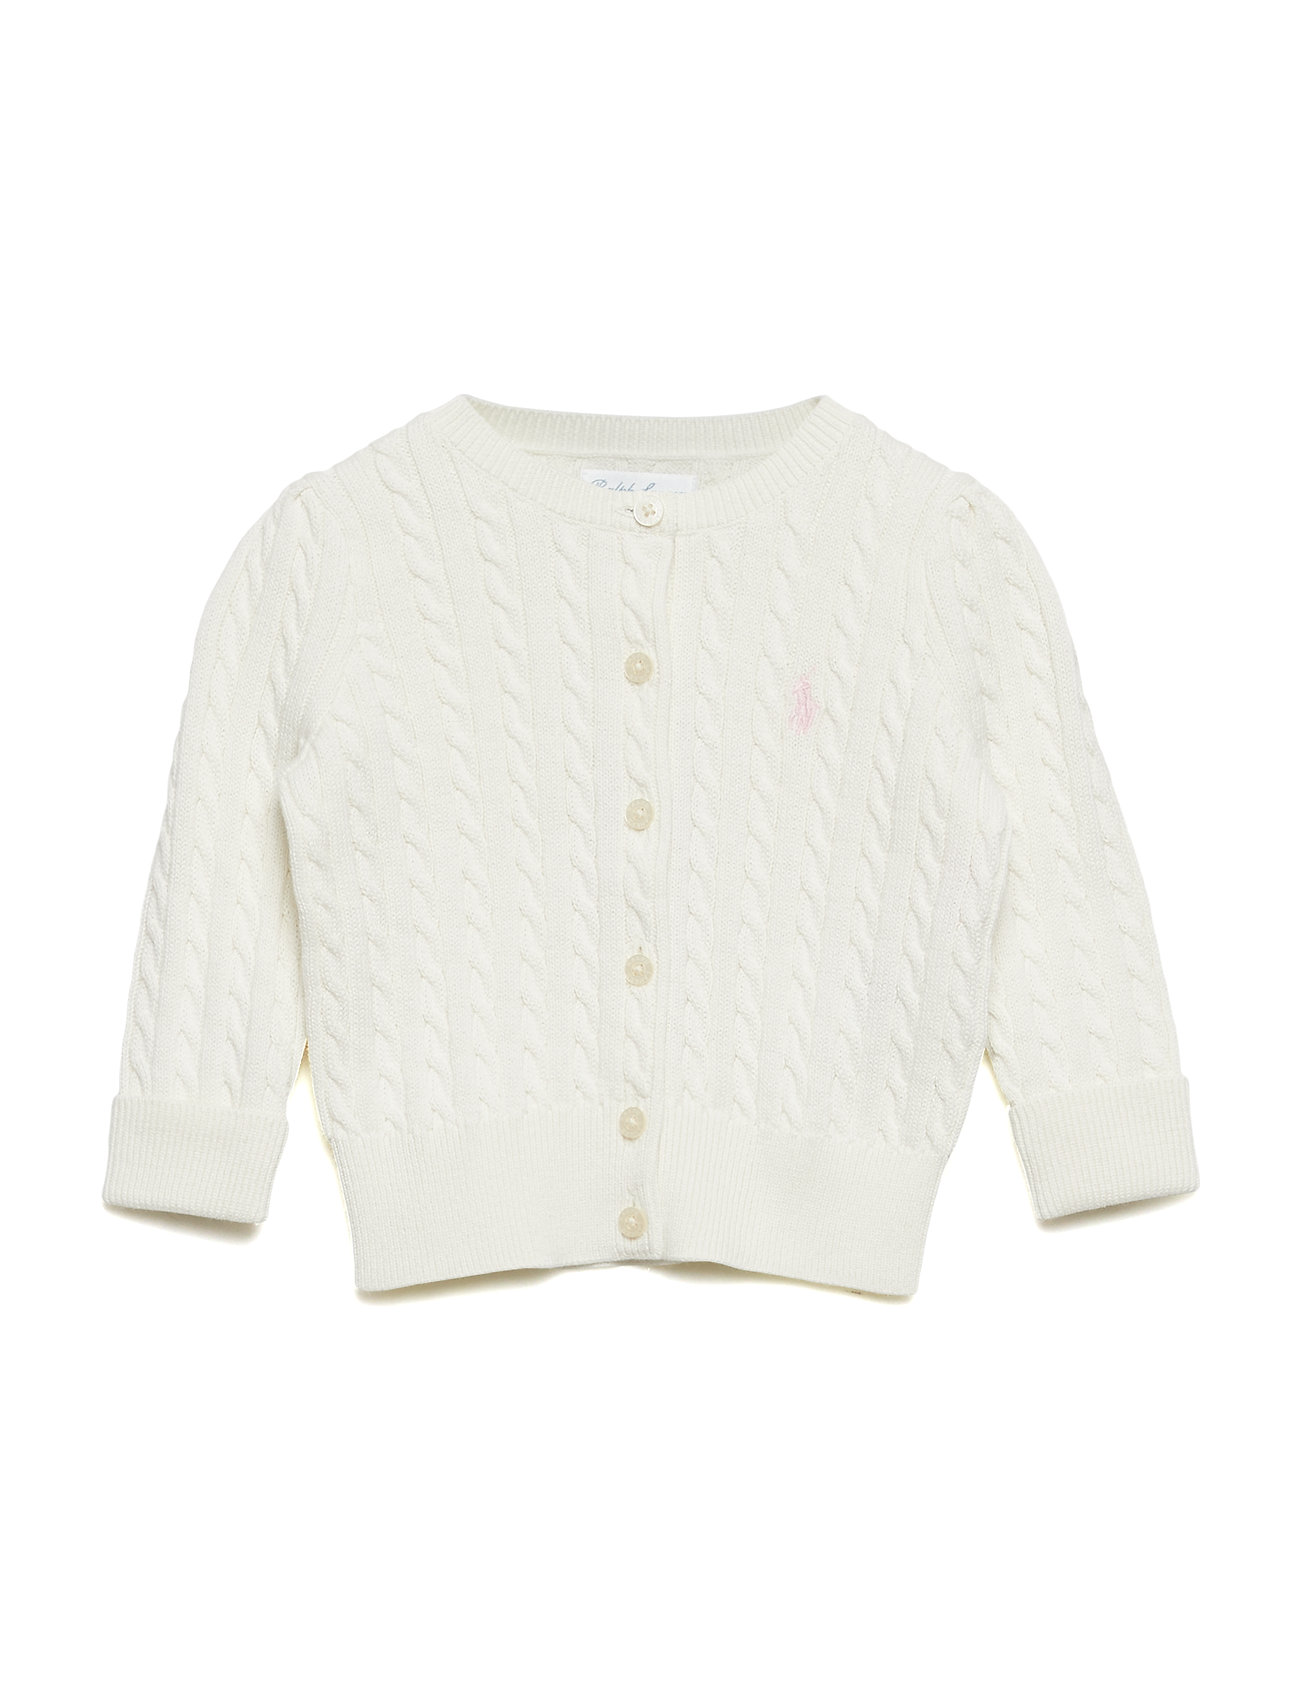 Ralph Lauren Baby Cable-Knit Cotton Cardigan - WARM WHITE